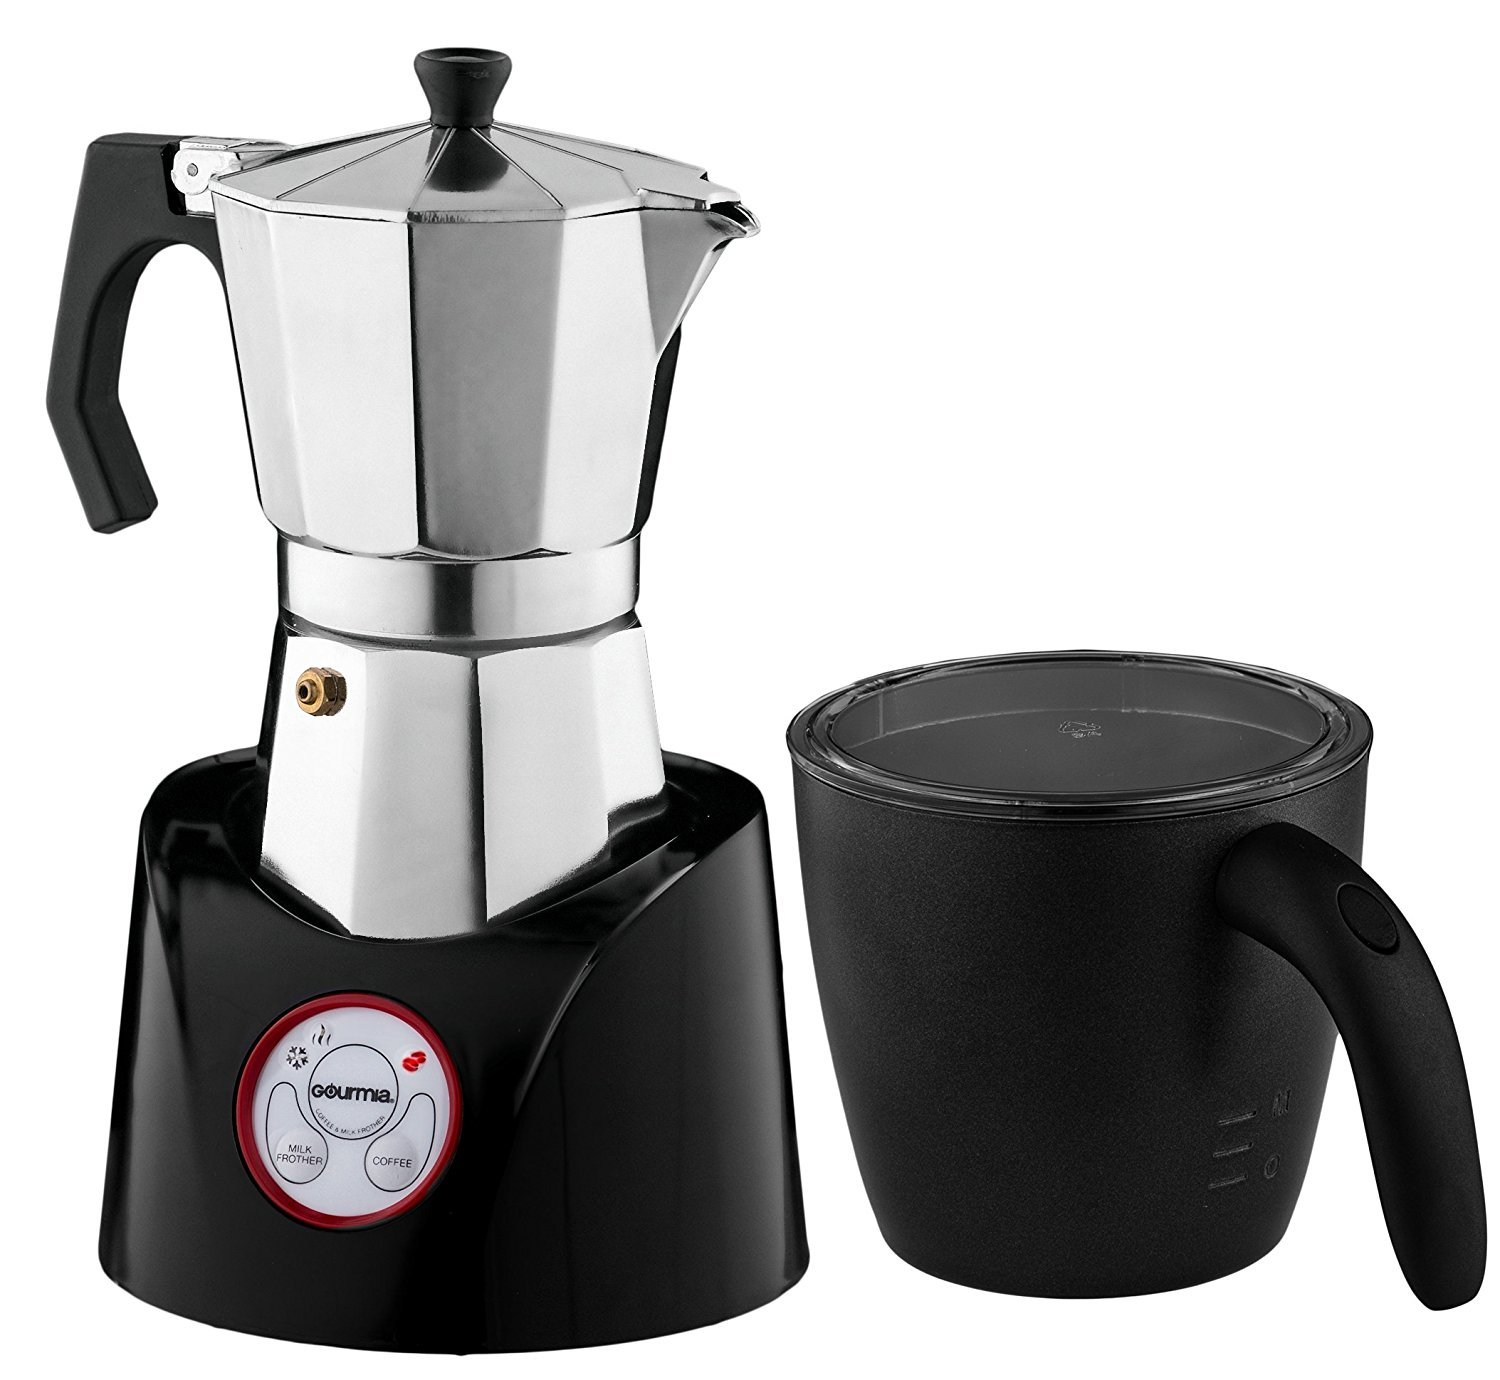 Gourmia GMF255 Espresso Coffee Pot & Milk Frother Combo, 2 in 1 Coffee Station With Interchangeable Base